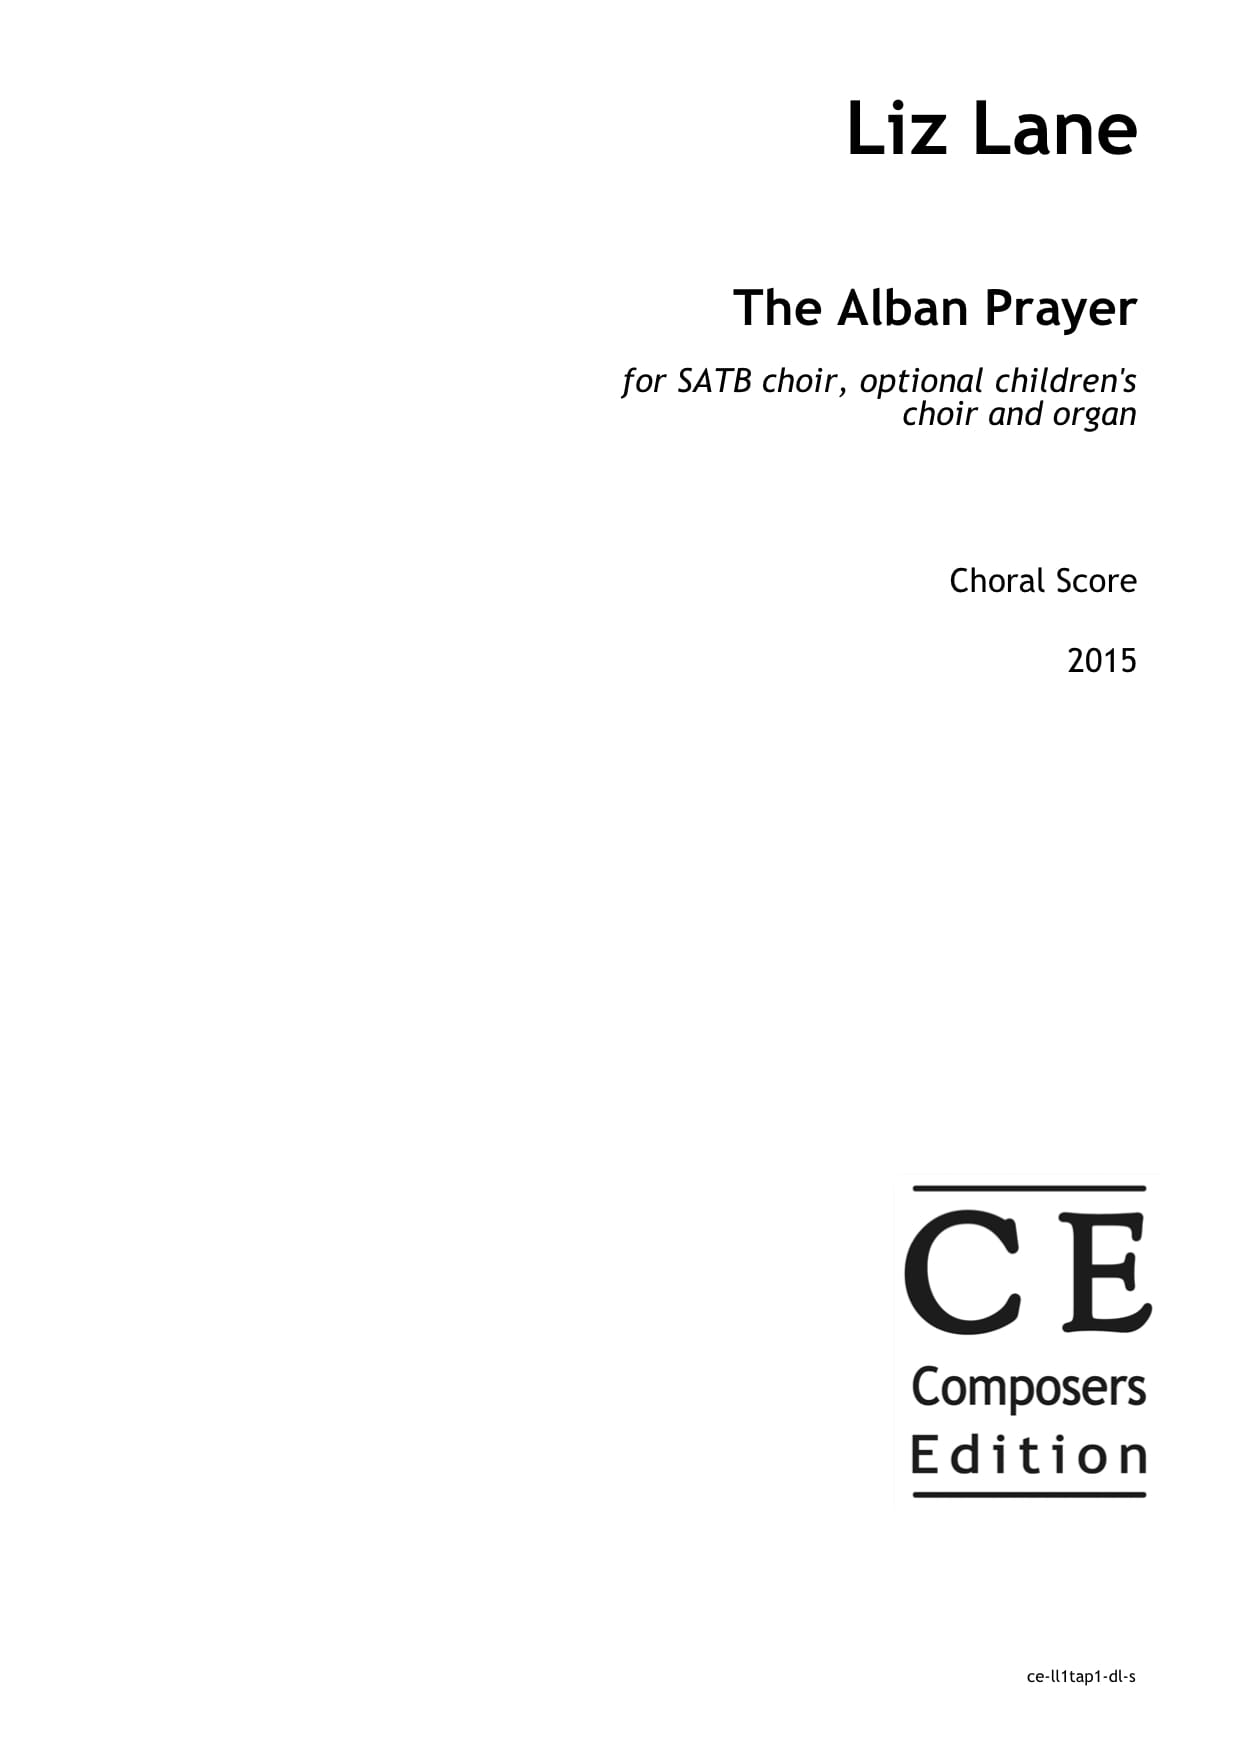 Liz Lane: The Alban Prayer for SATB choir, optional children's choir and organ